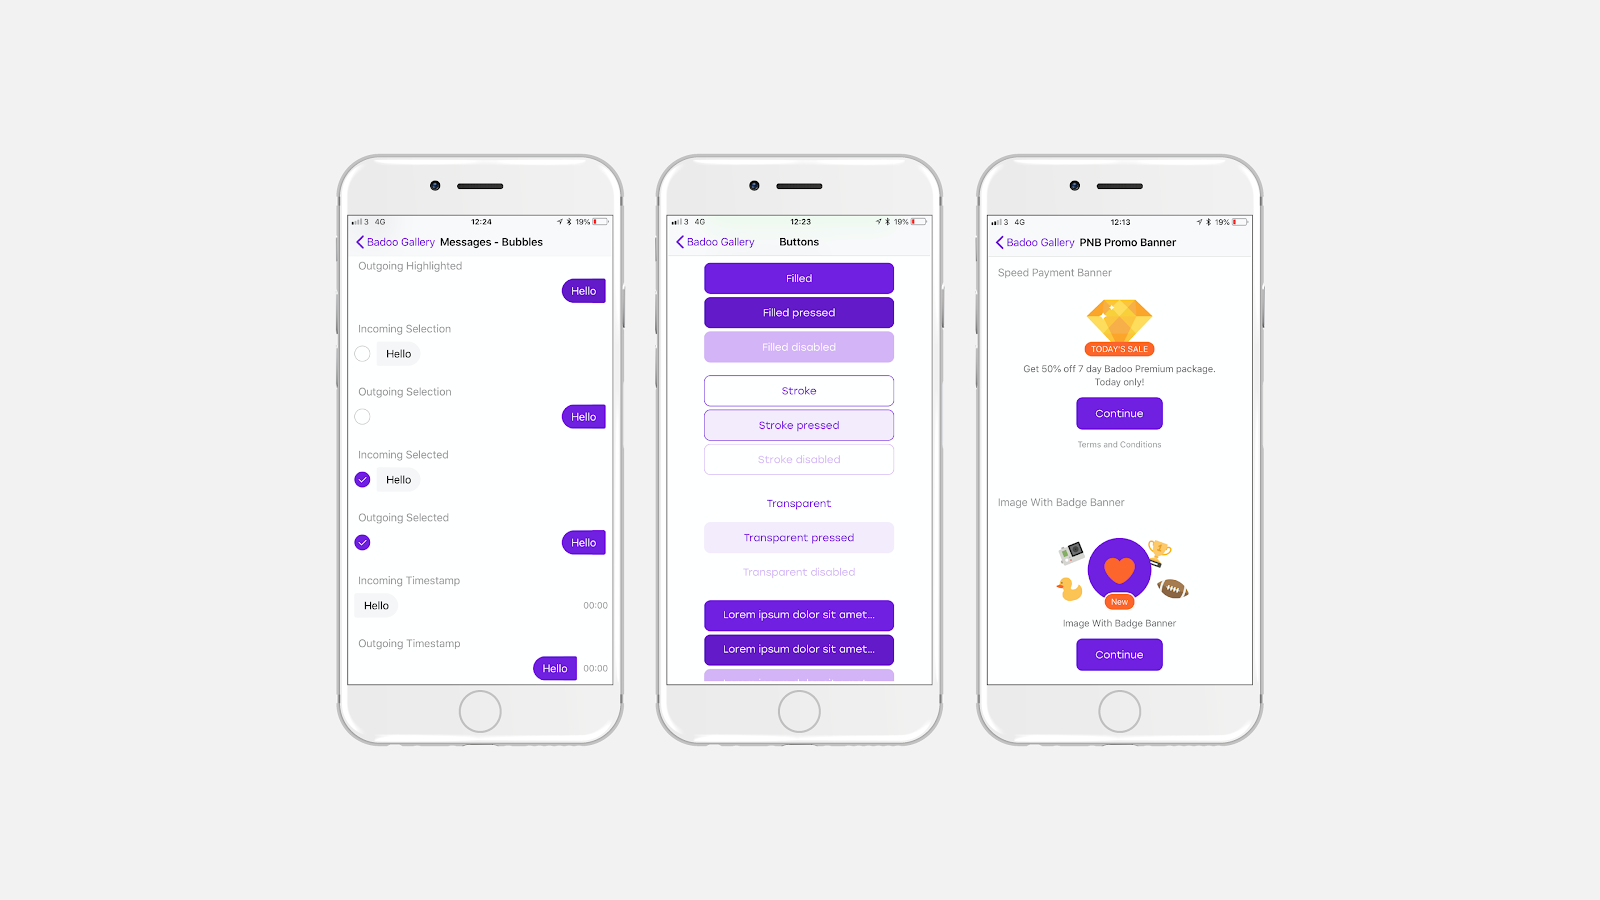 Implementing UI in iOS: Better, faster, and it scales